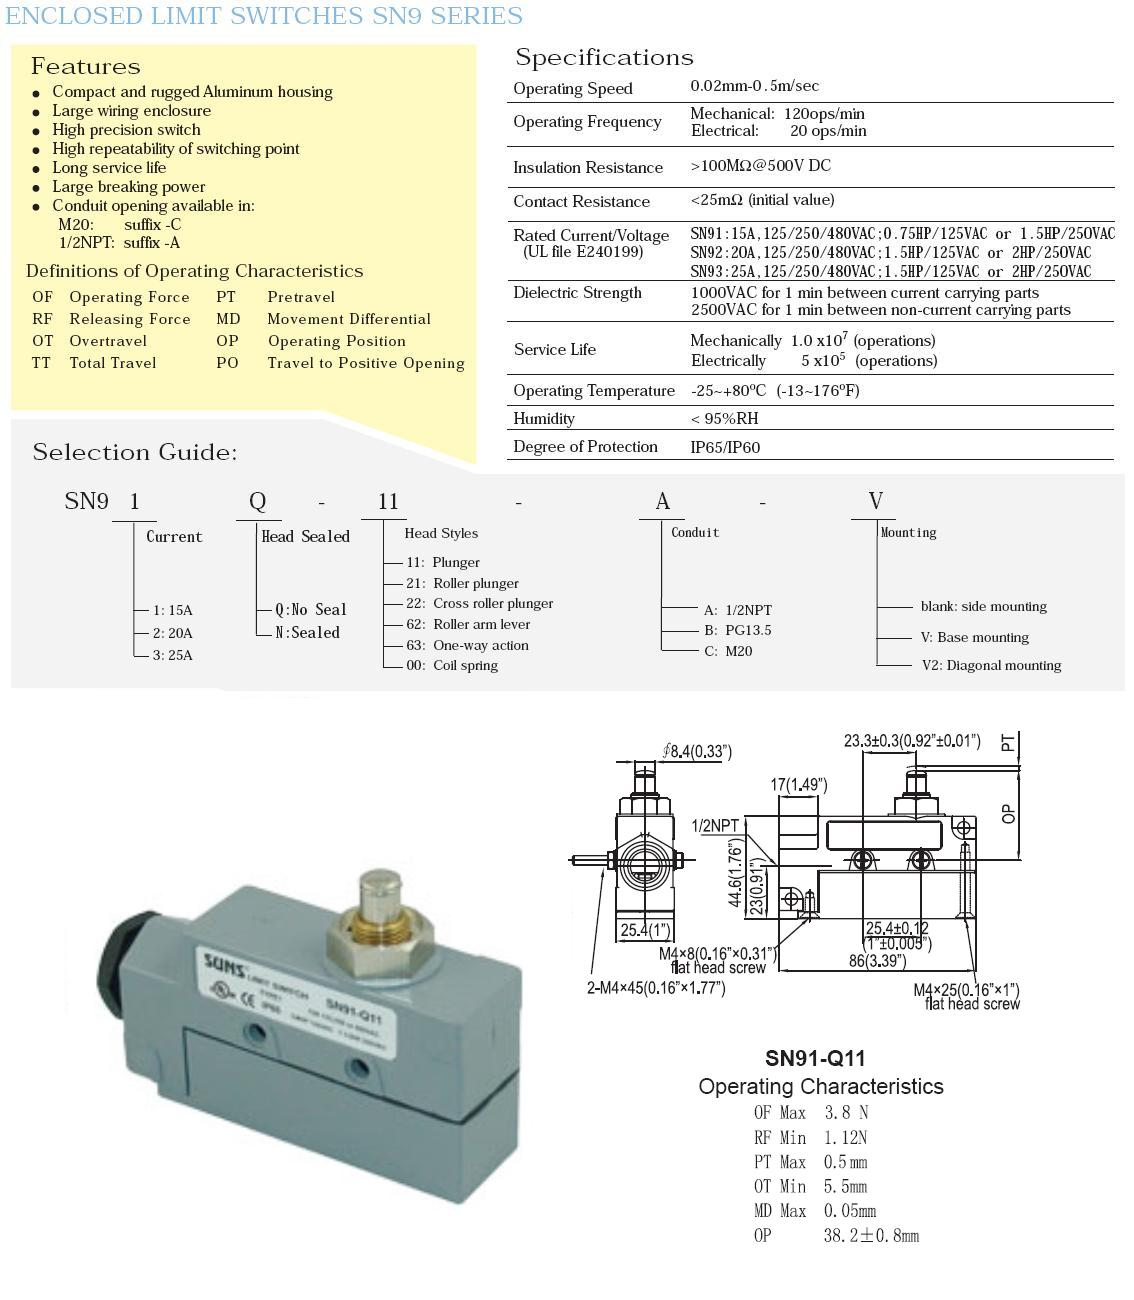 Air Curtain Limit Switch Wiring Electrical Diagrams Honeywell Wire Diagram Suns Sn91 Q11 A Top Plunger Bze6 2rq Ze Q 2